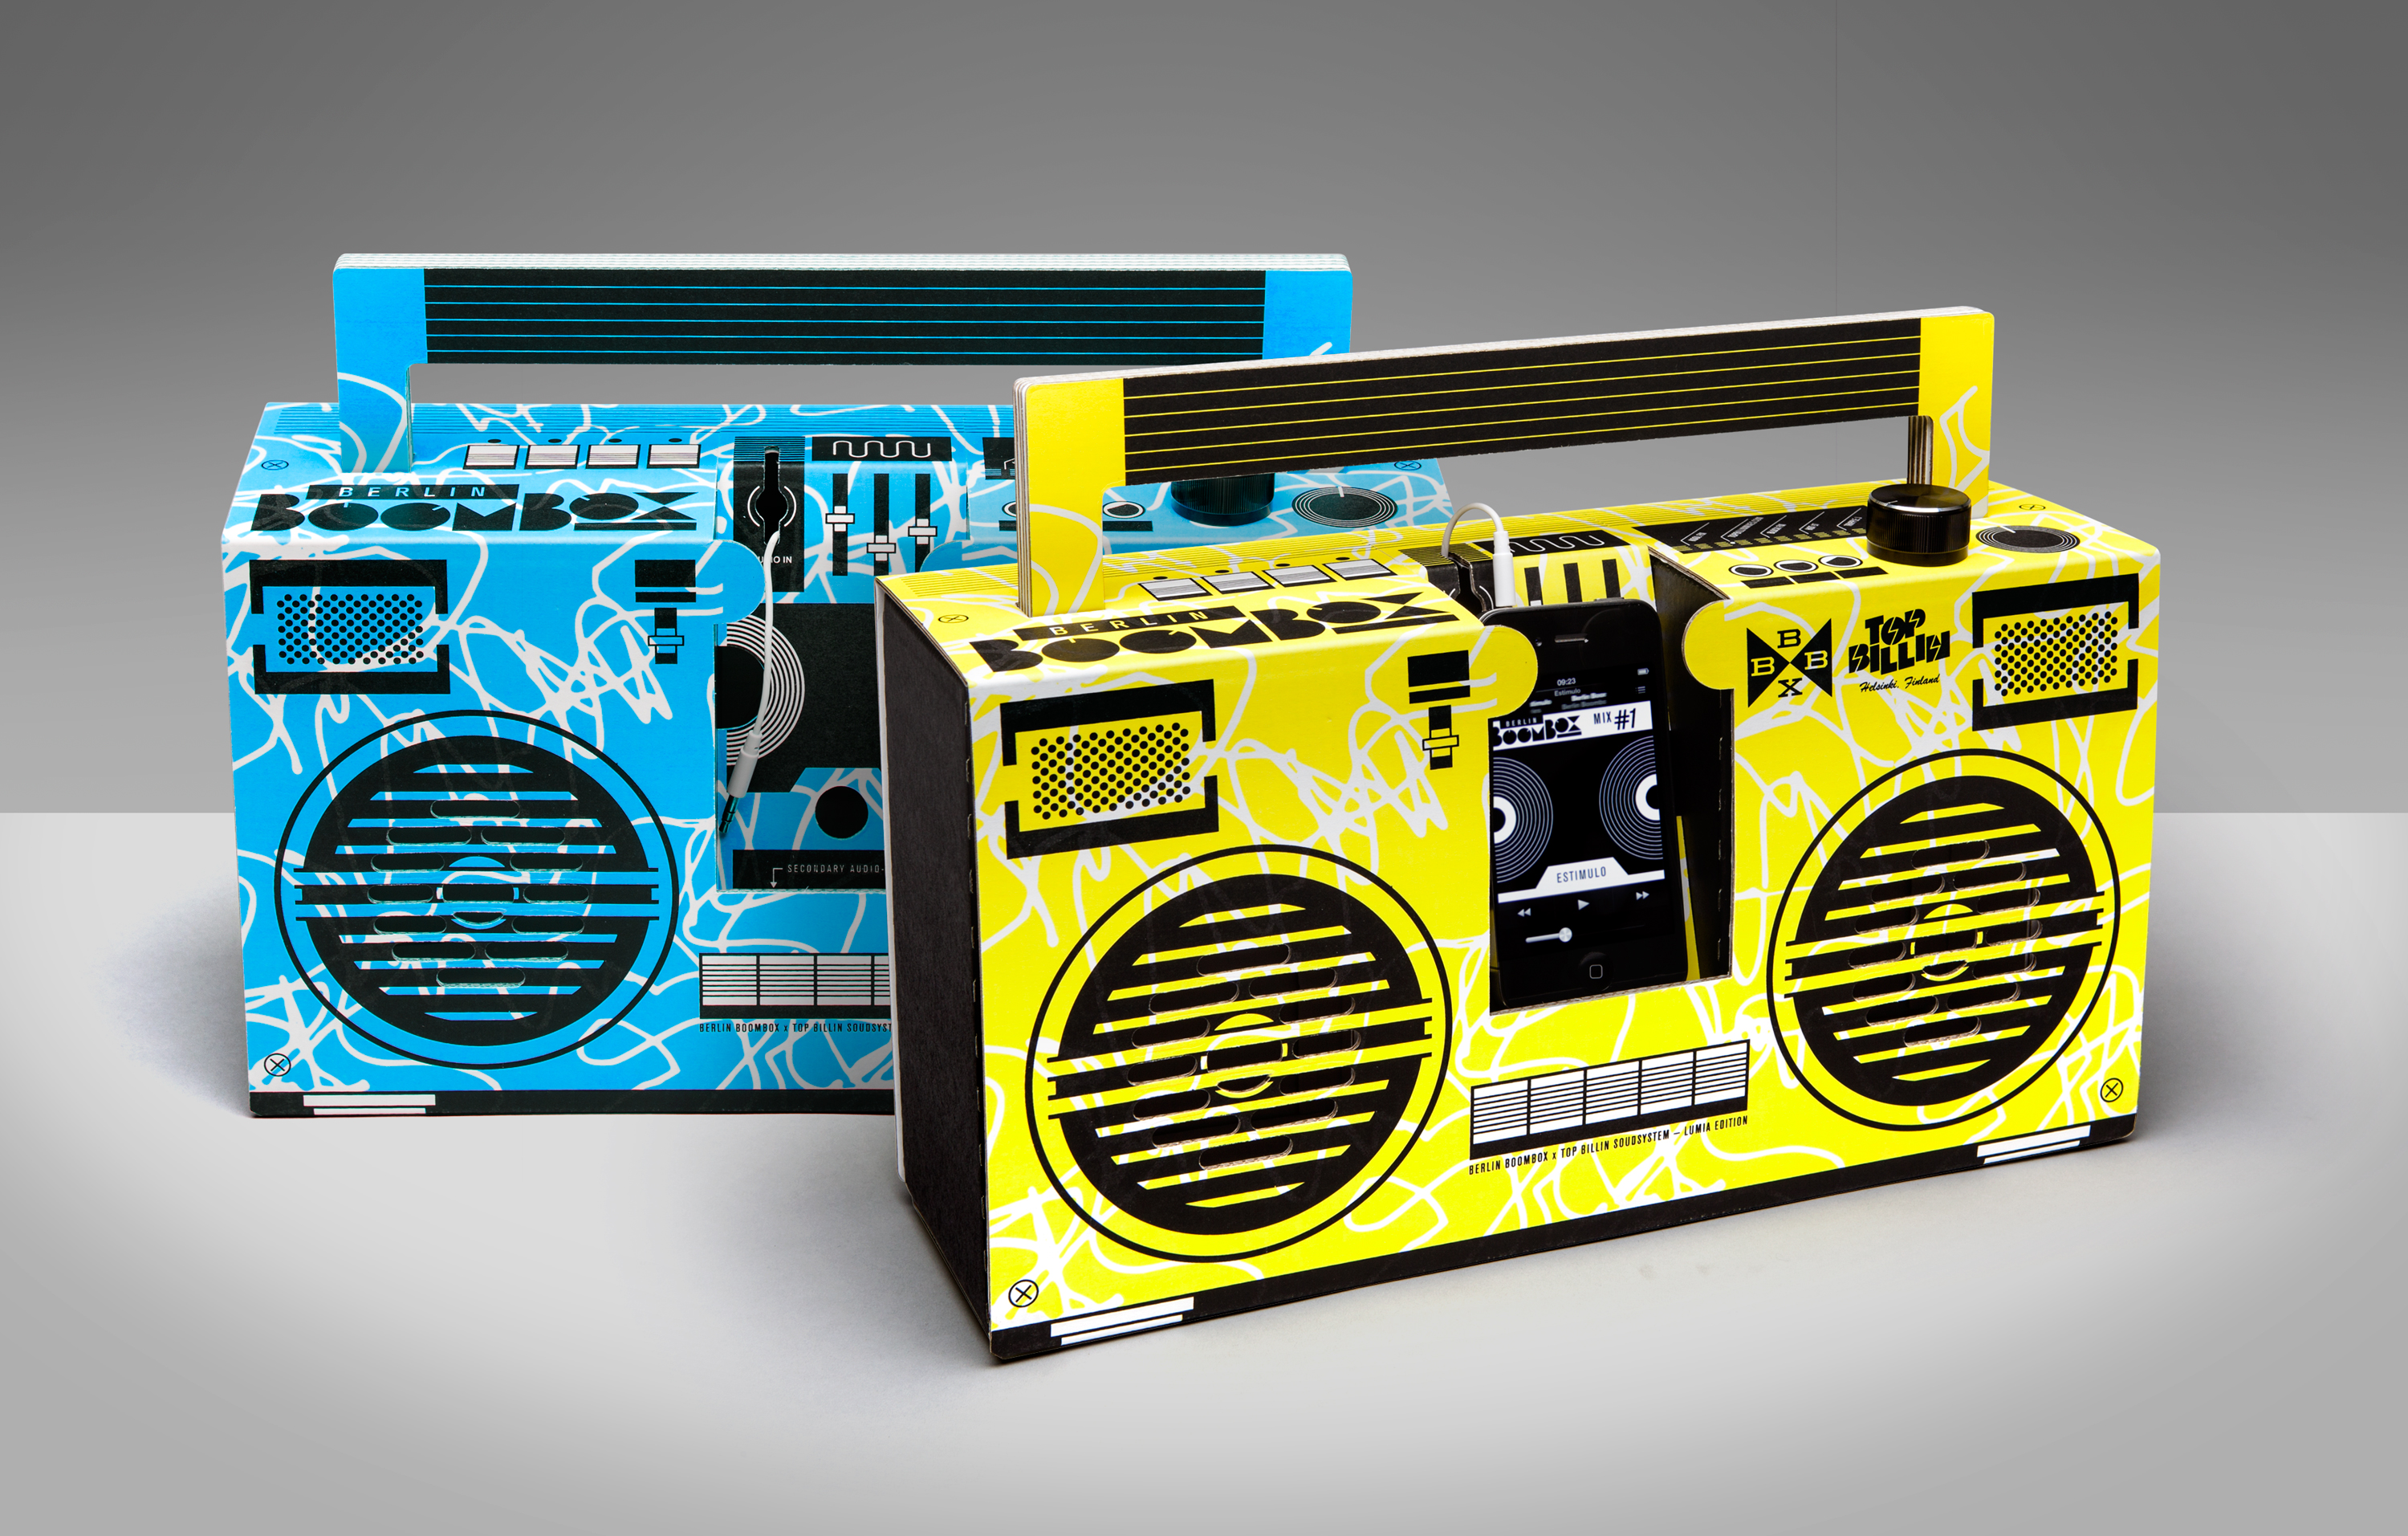 Montana Boombox - Customize Your Own Ghettoblaster